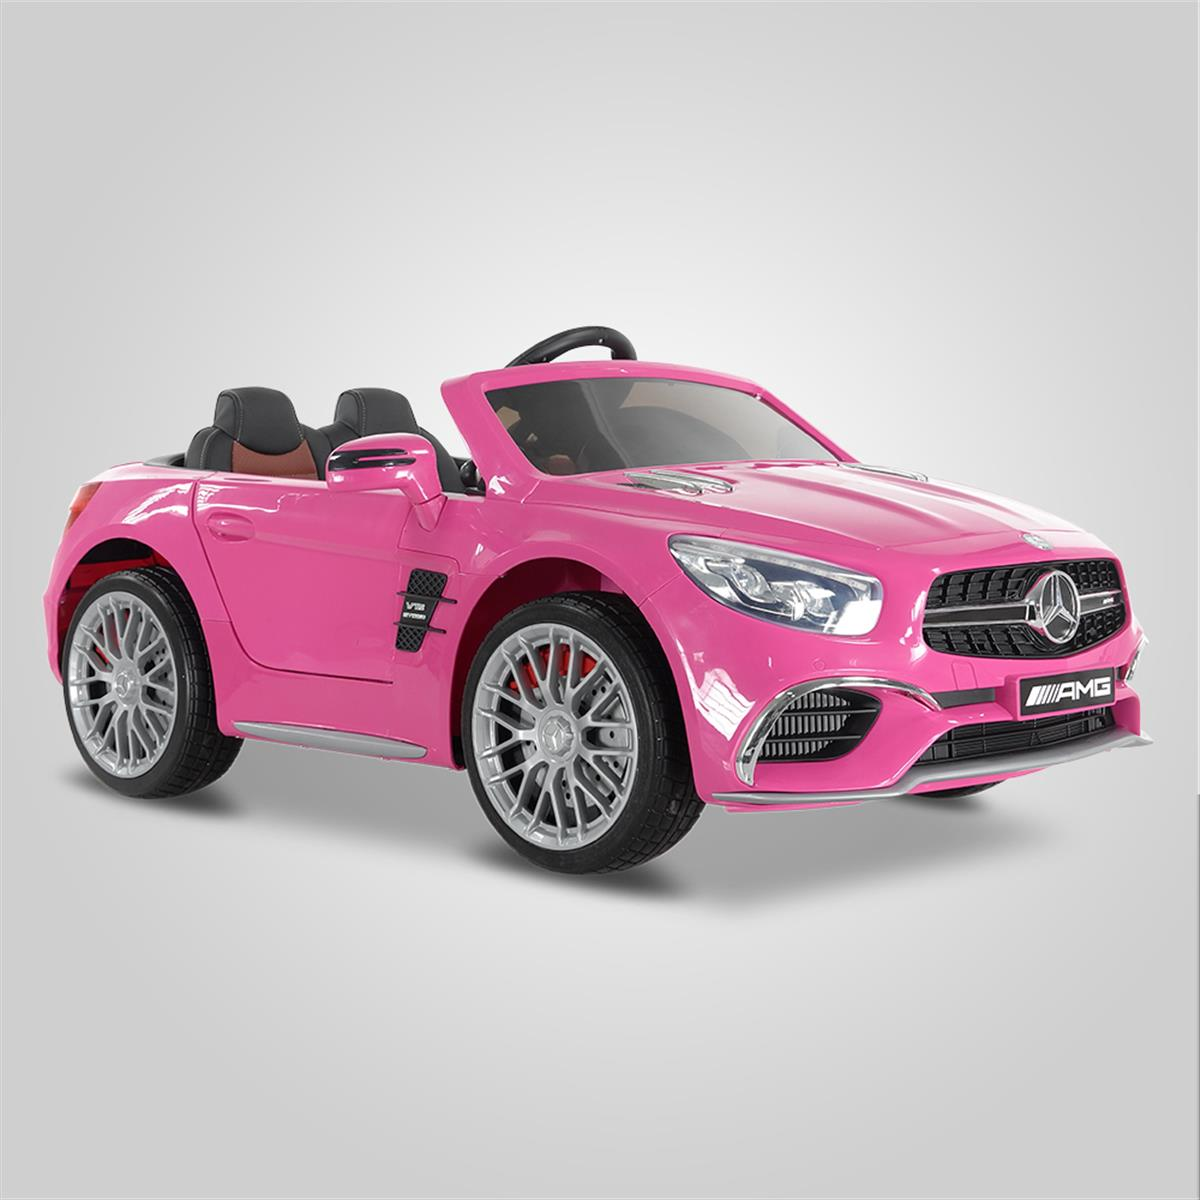 mercedes benz amg sl 65 toutes les voitures lectriques pour b b smallmx dirt bike pit. Black Bedroom Furniture Sets. Home Design Ideas